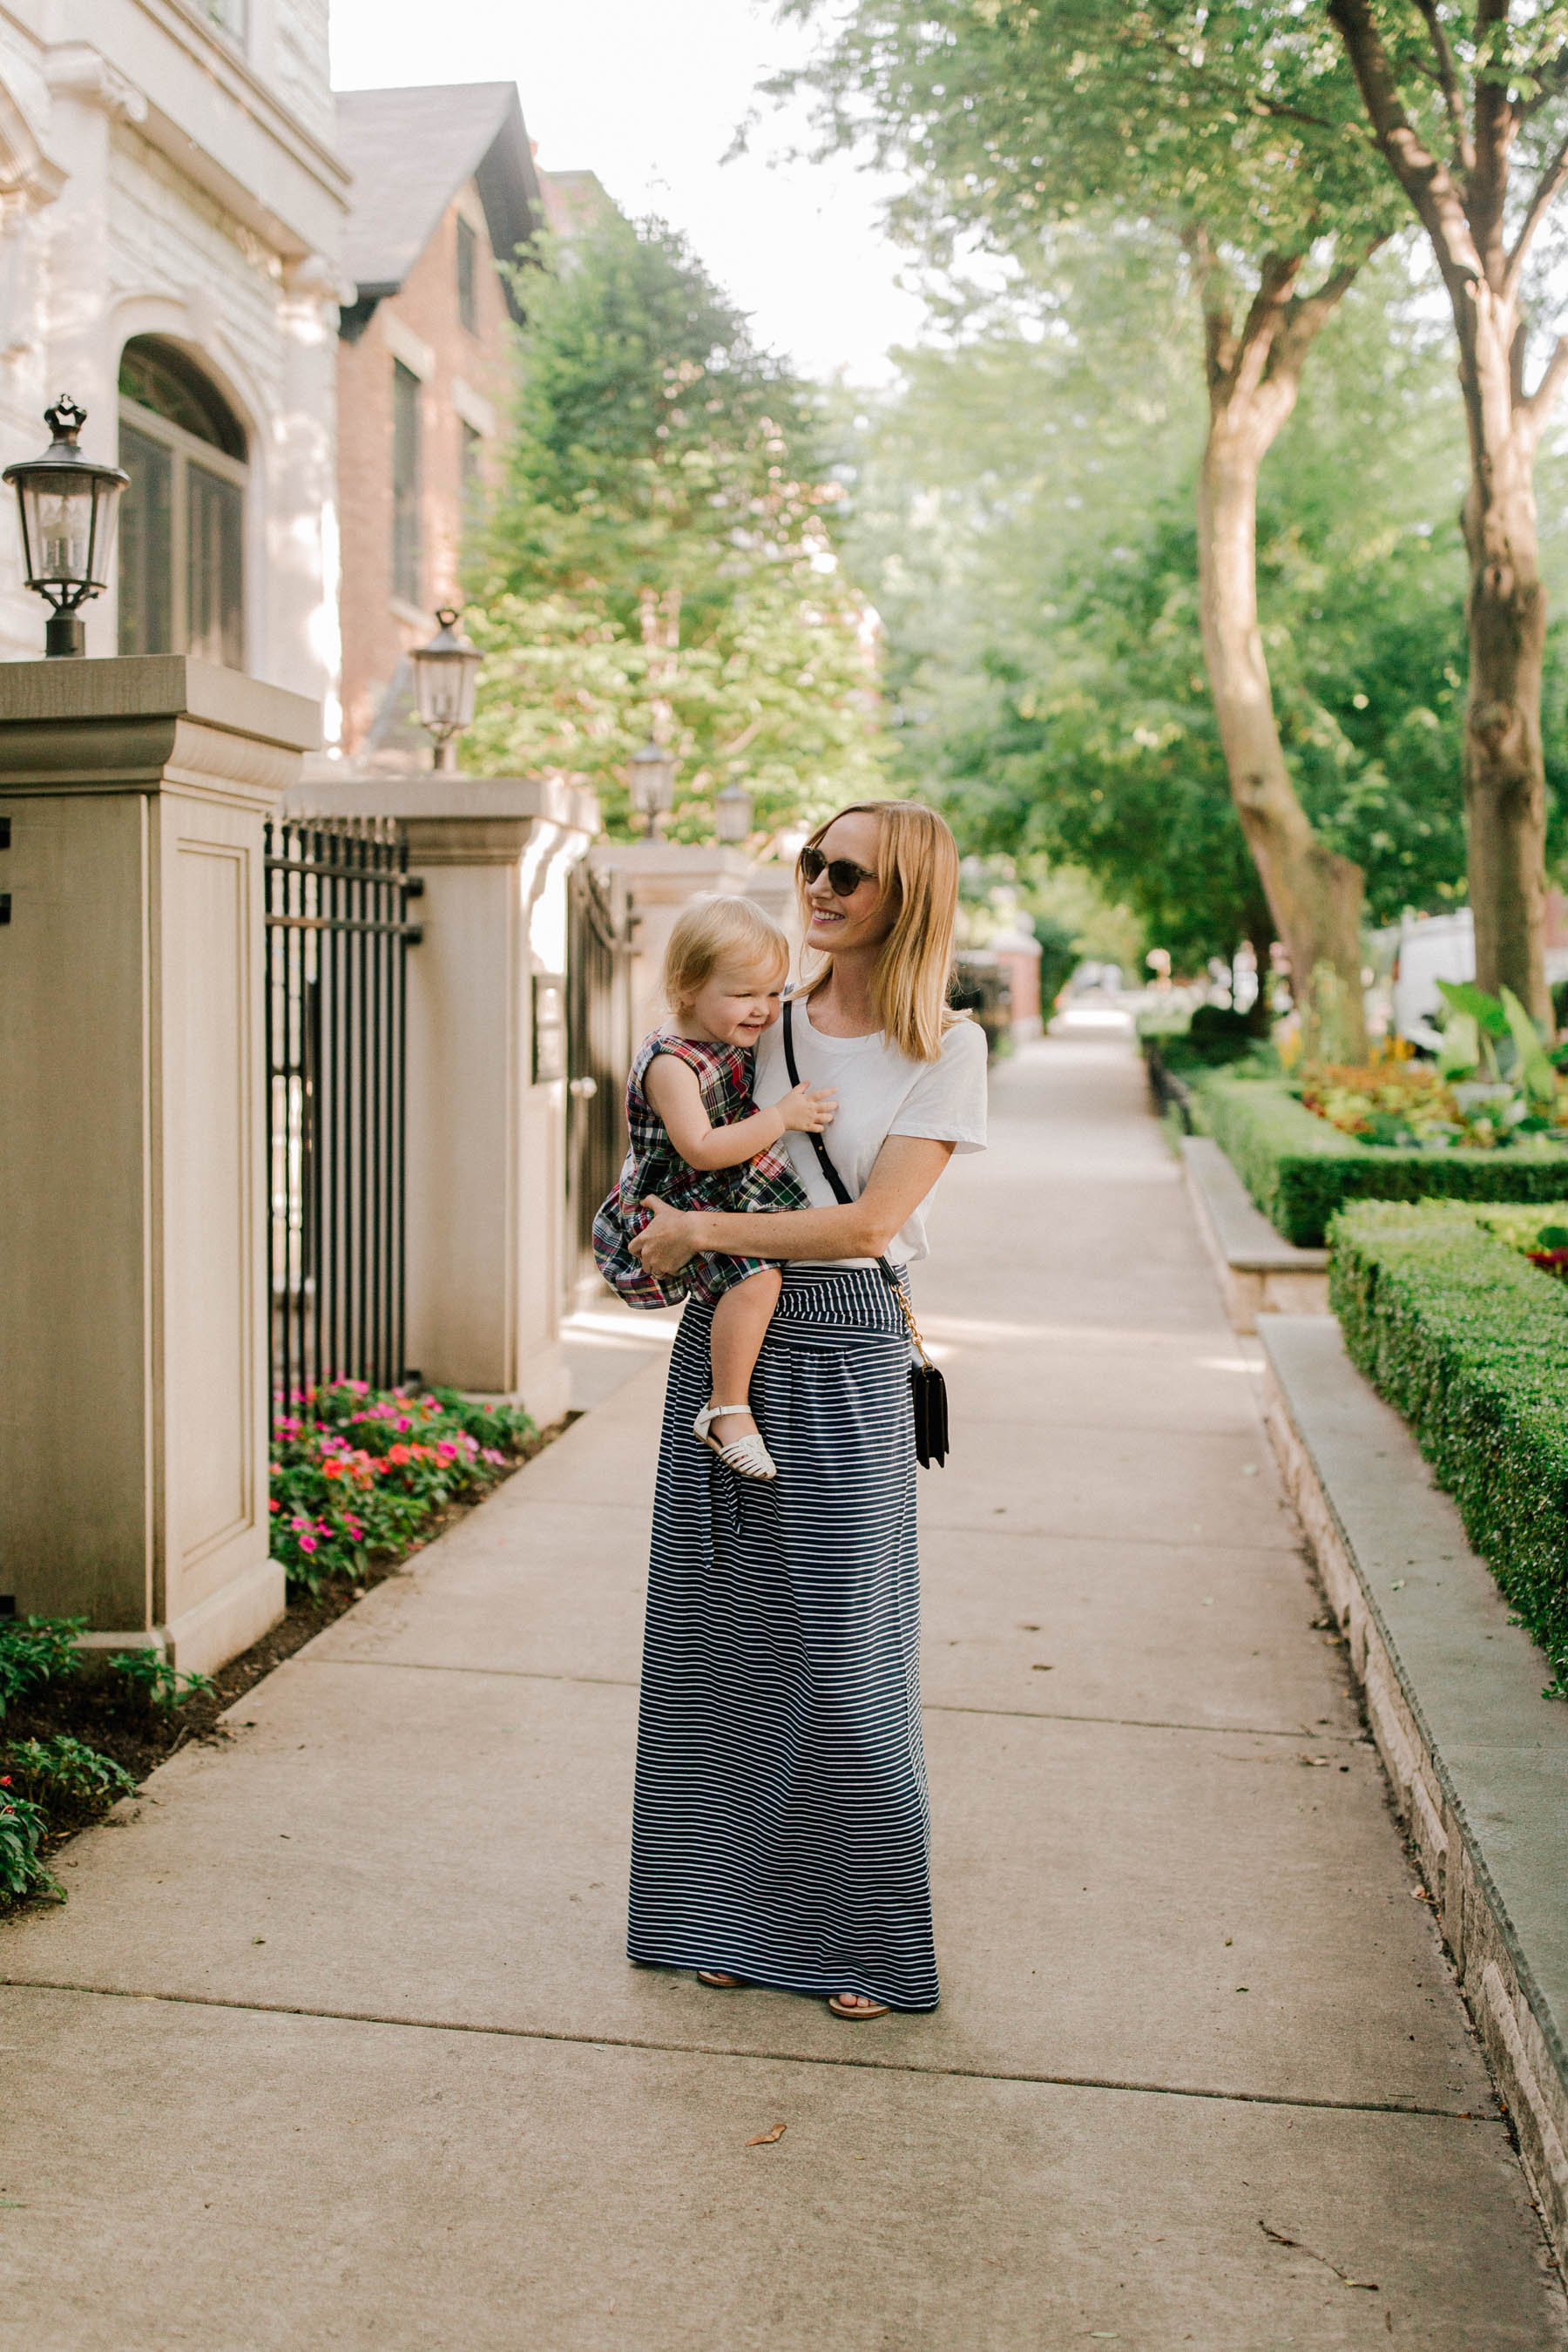 Nordstrom sale outfits - Navy Striped Jersey Maxi Skirt / White Tee / Jack Rogers (Still on major sale!) /Tory Burch Navy Bag